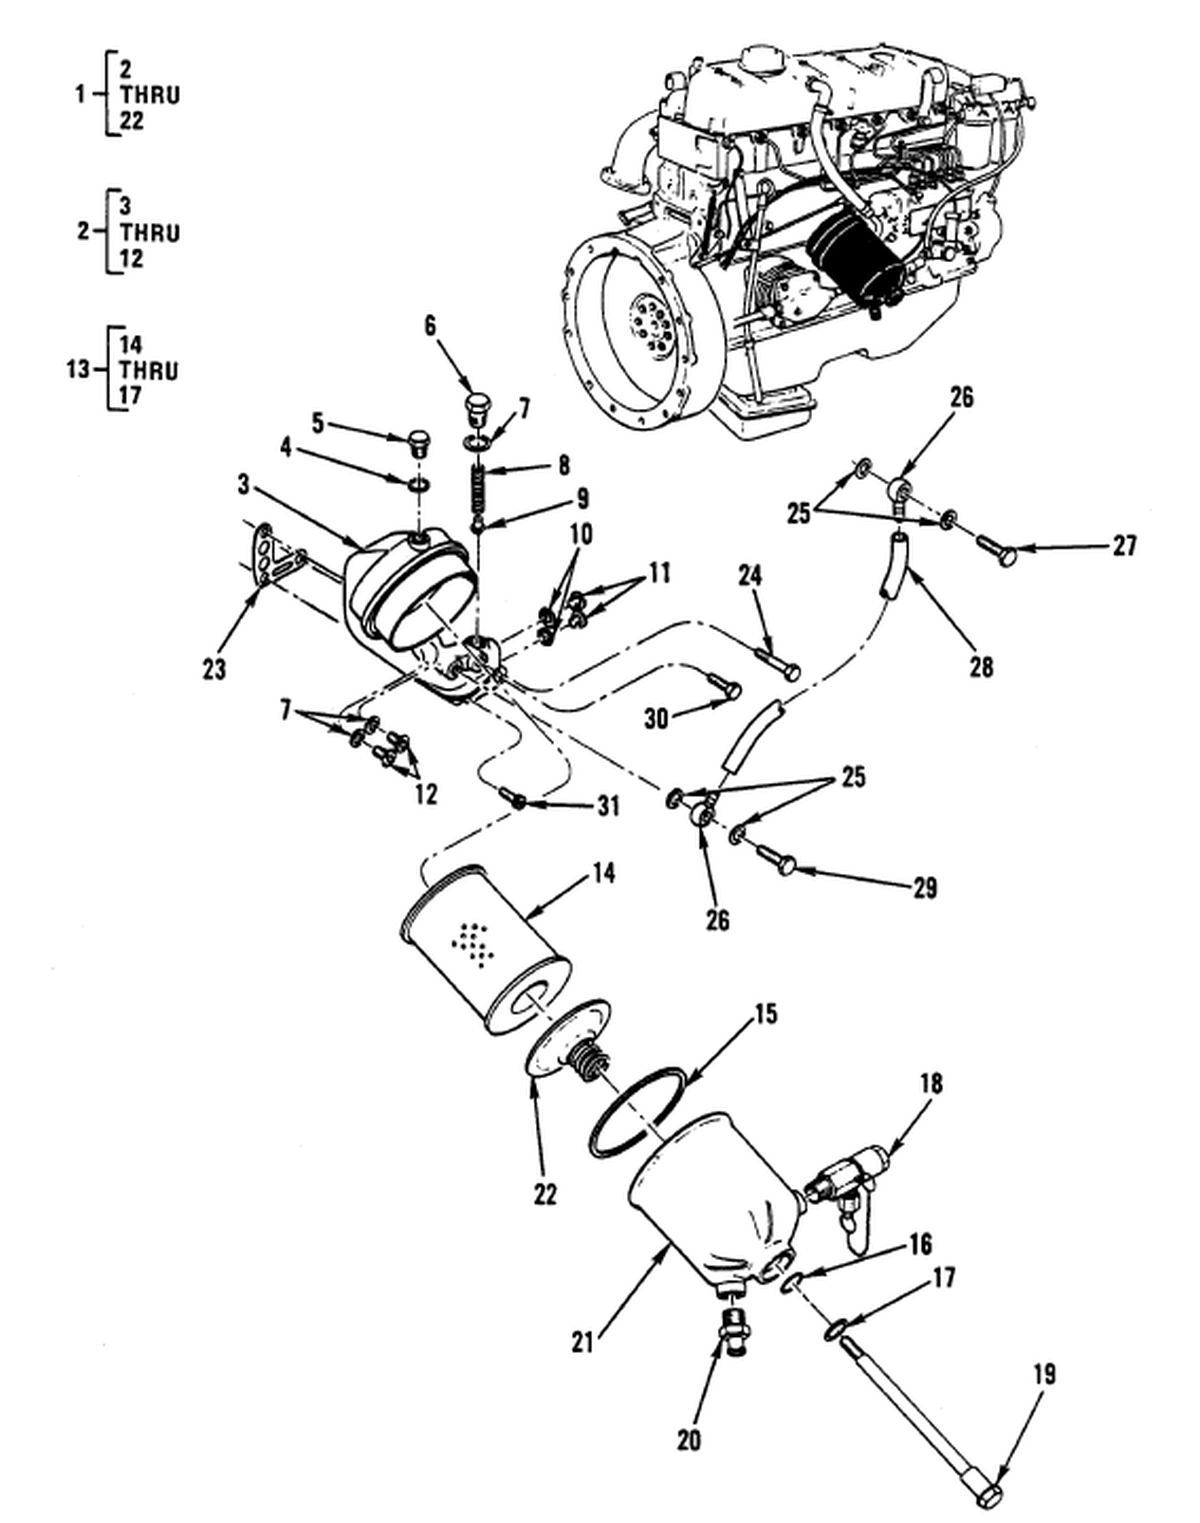 2008 envoy engine diagram oil system 0016 00-2 figure 15. engine lubrication system – fluid ... continental oil system diagram